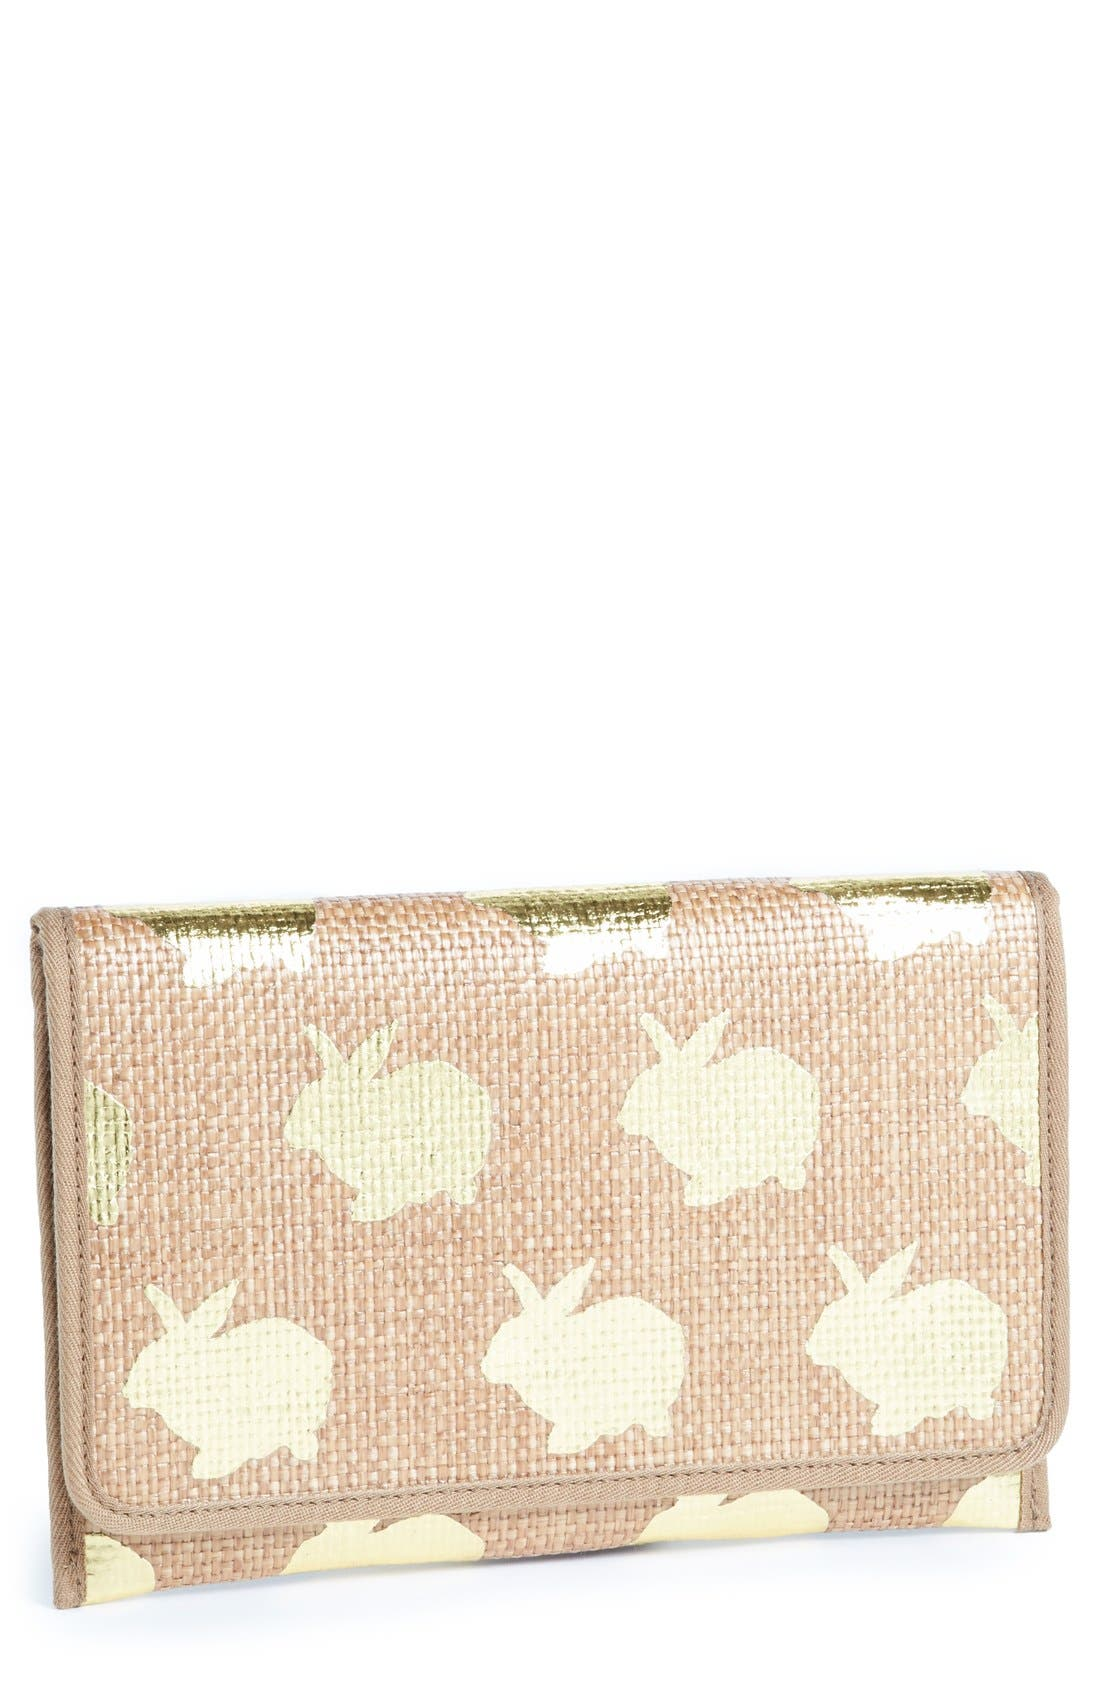 Alternate Image 1 Selected - MARC BY MARC JACOBS 'Jet Set Pets - Katie' Clutch